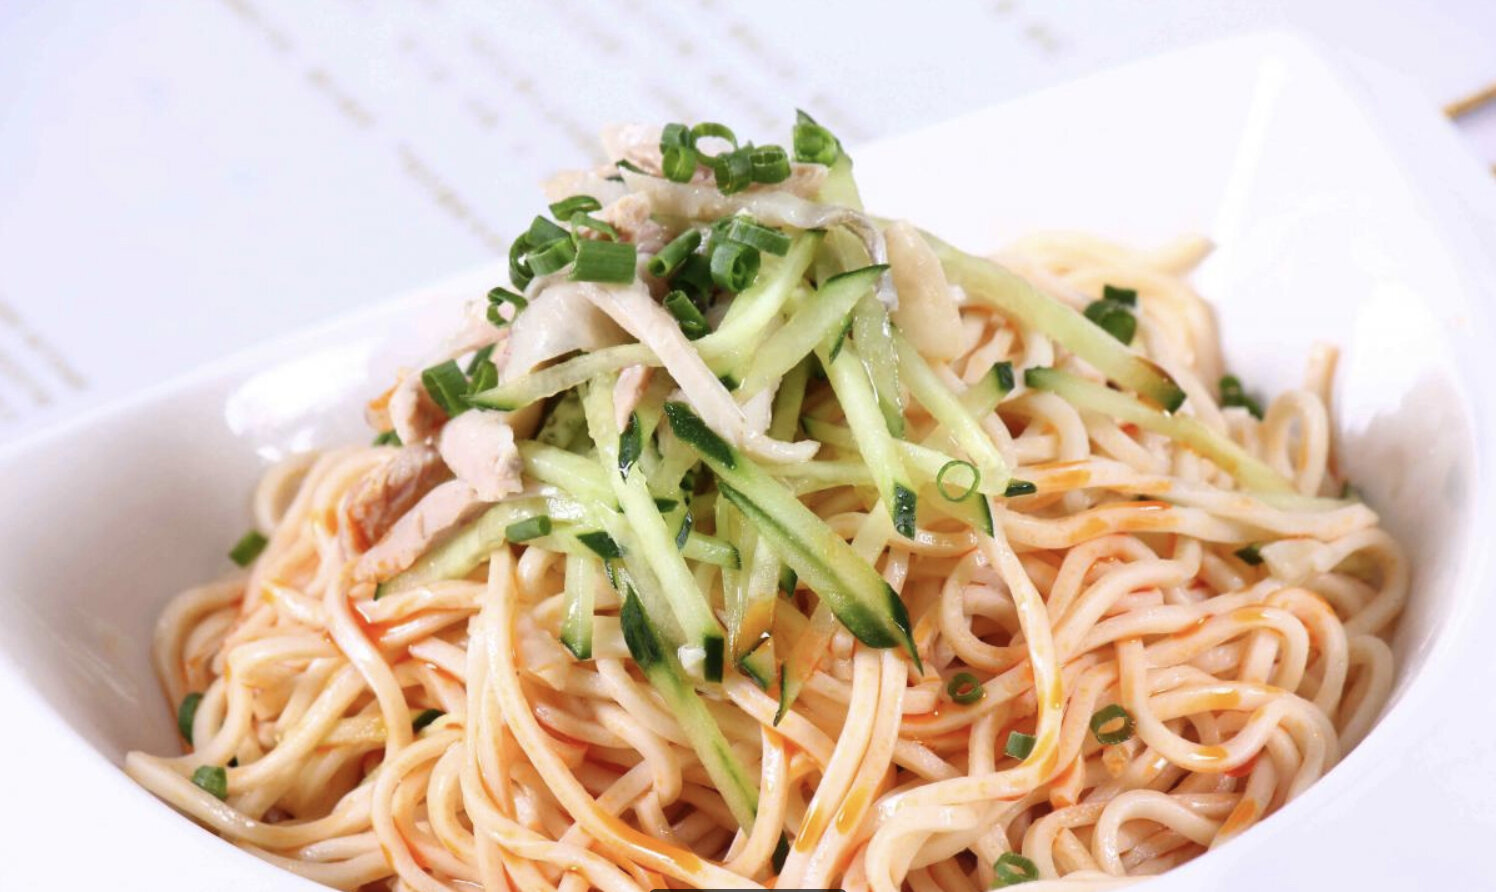 """This dish, """"Noodles with Shredded Chicken and Cucumber"""" was so fresh and filling. I'd come in just for this (a perfect lunch). Image Courtesy: Shanghai Chinese Restaurant"""